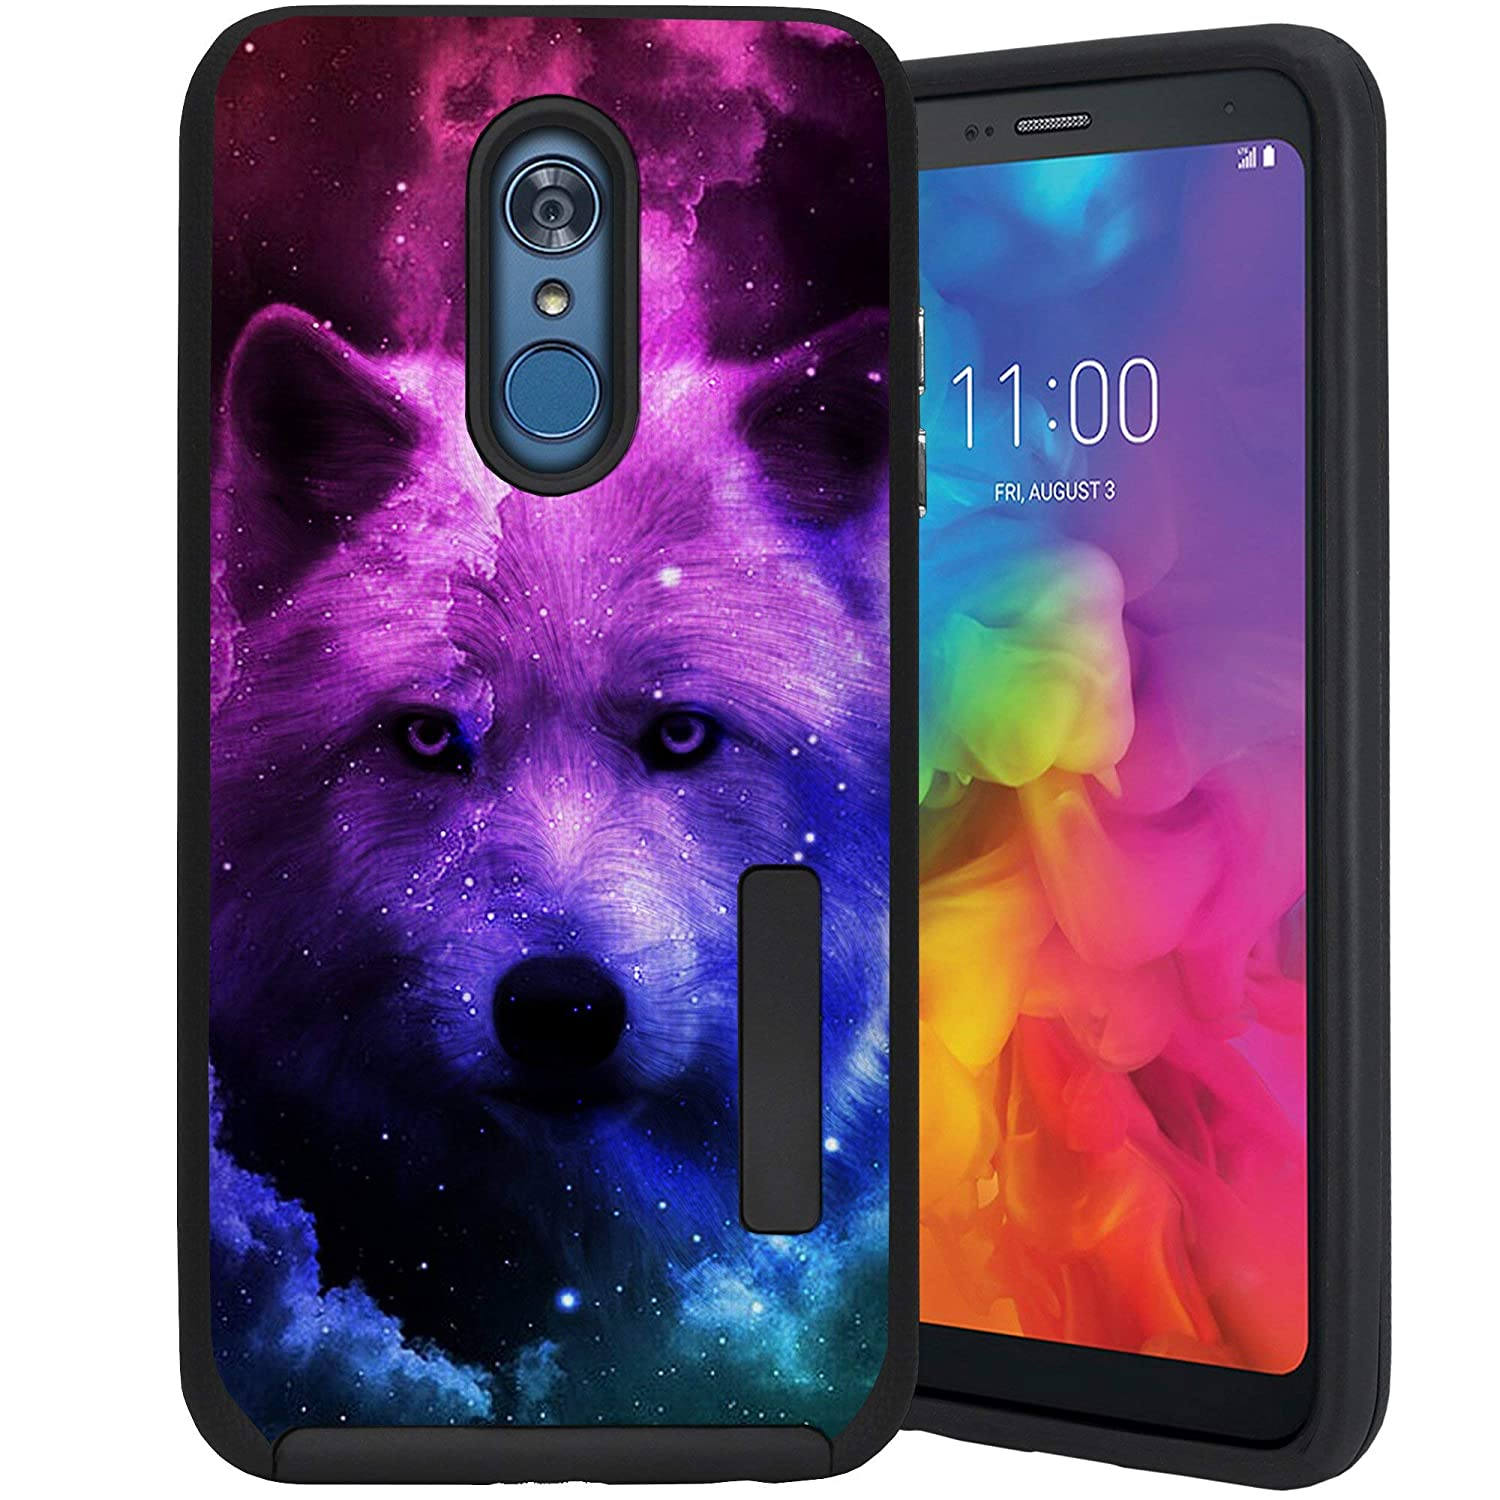 CasesOnDeck Case Compatible with [LG Q7 / LG Q7+ / LG Q7 Plus][Grip Tactical] Dual Layer Rubberized Shock Shell Inner TPU Soft Interior (Galaxy Wolf)